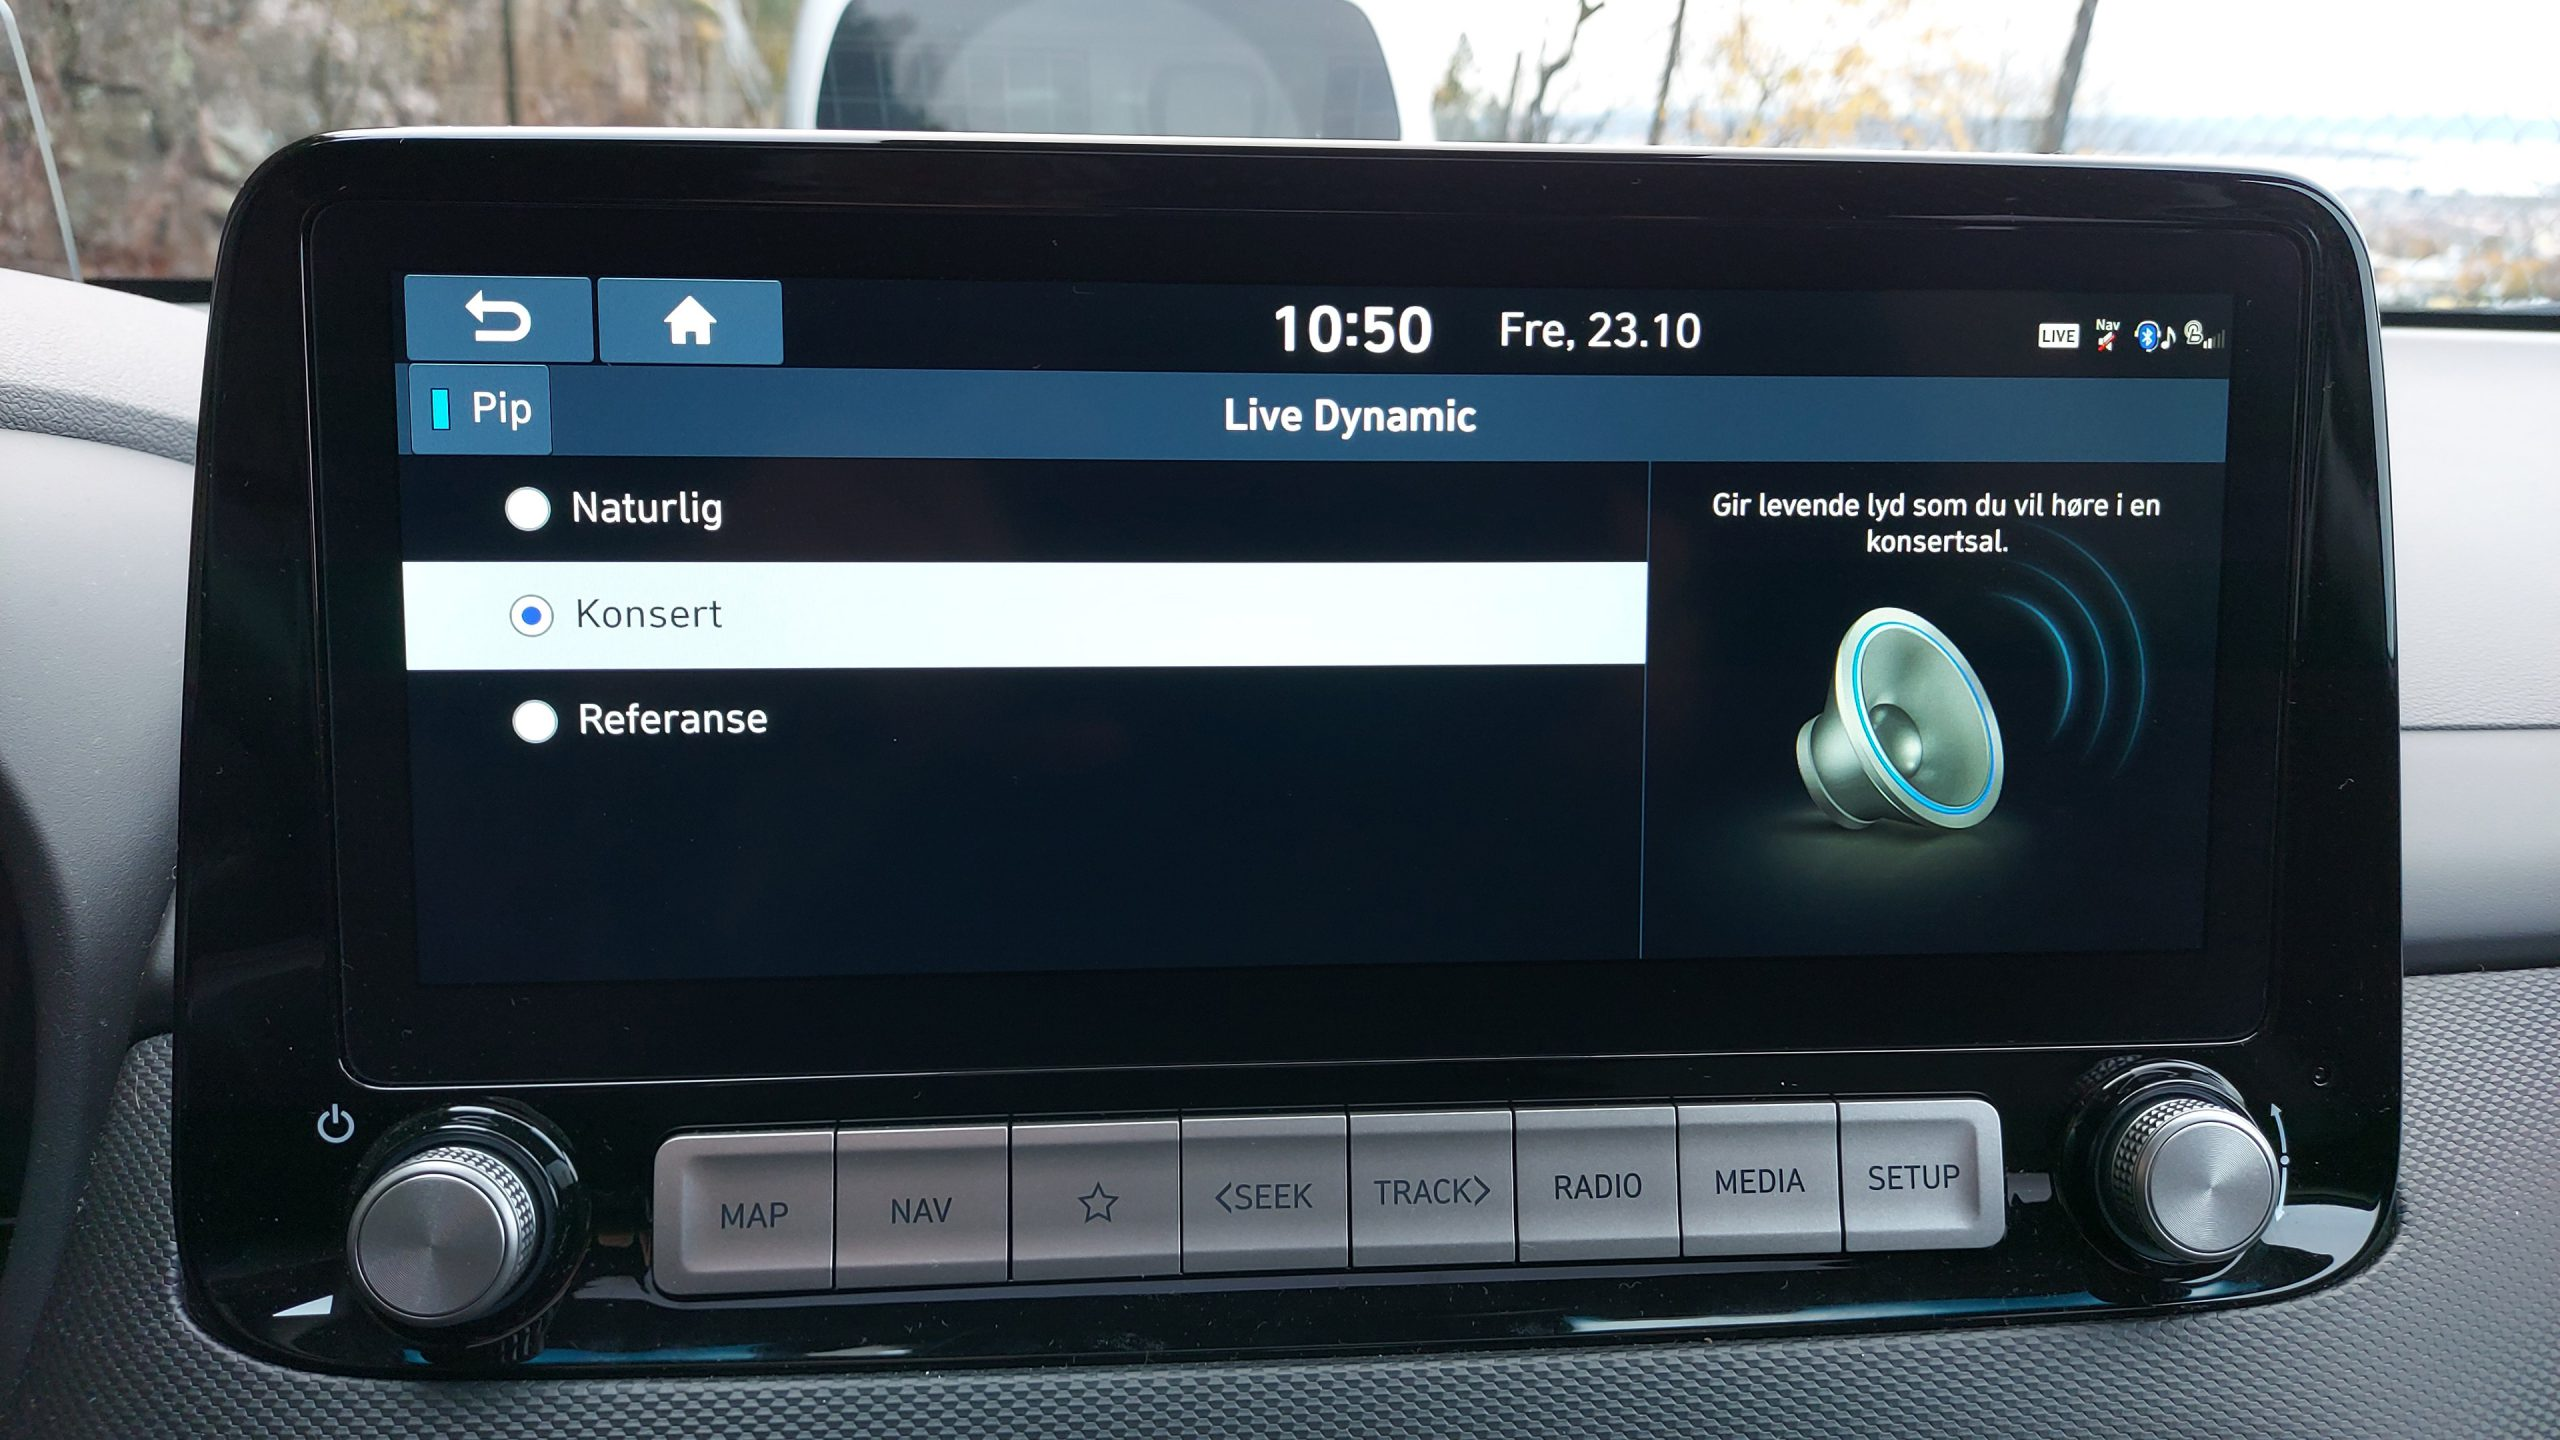 Hyundai Kona sound settings